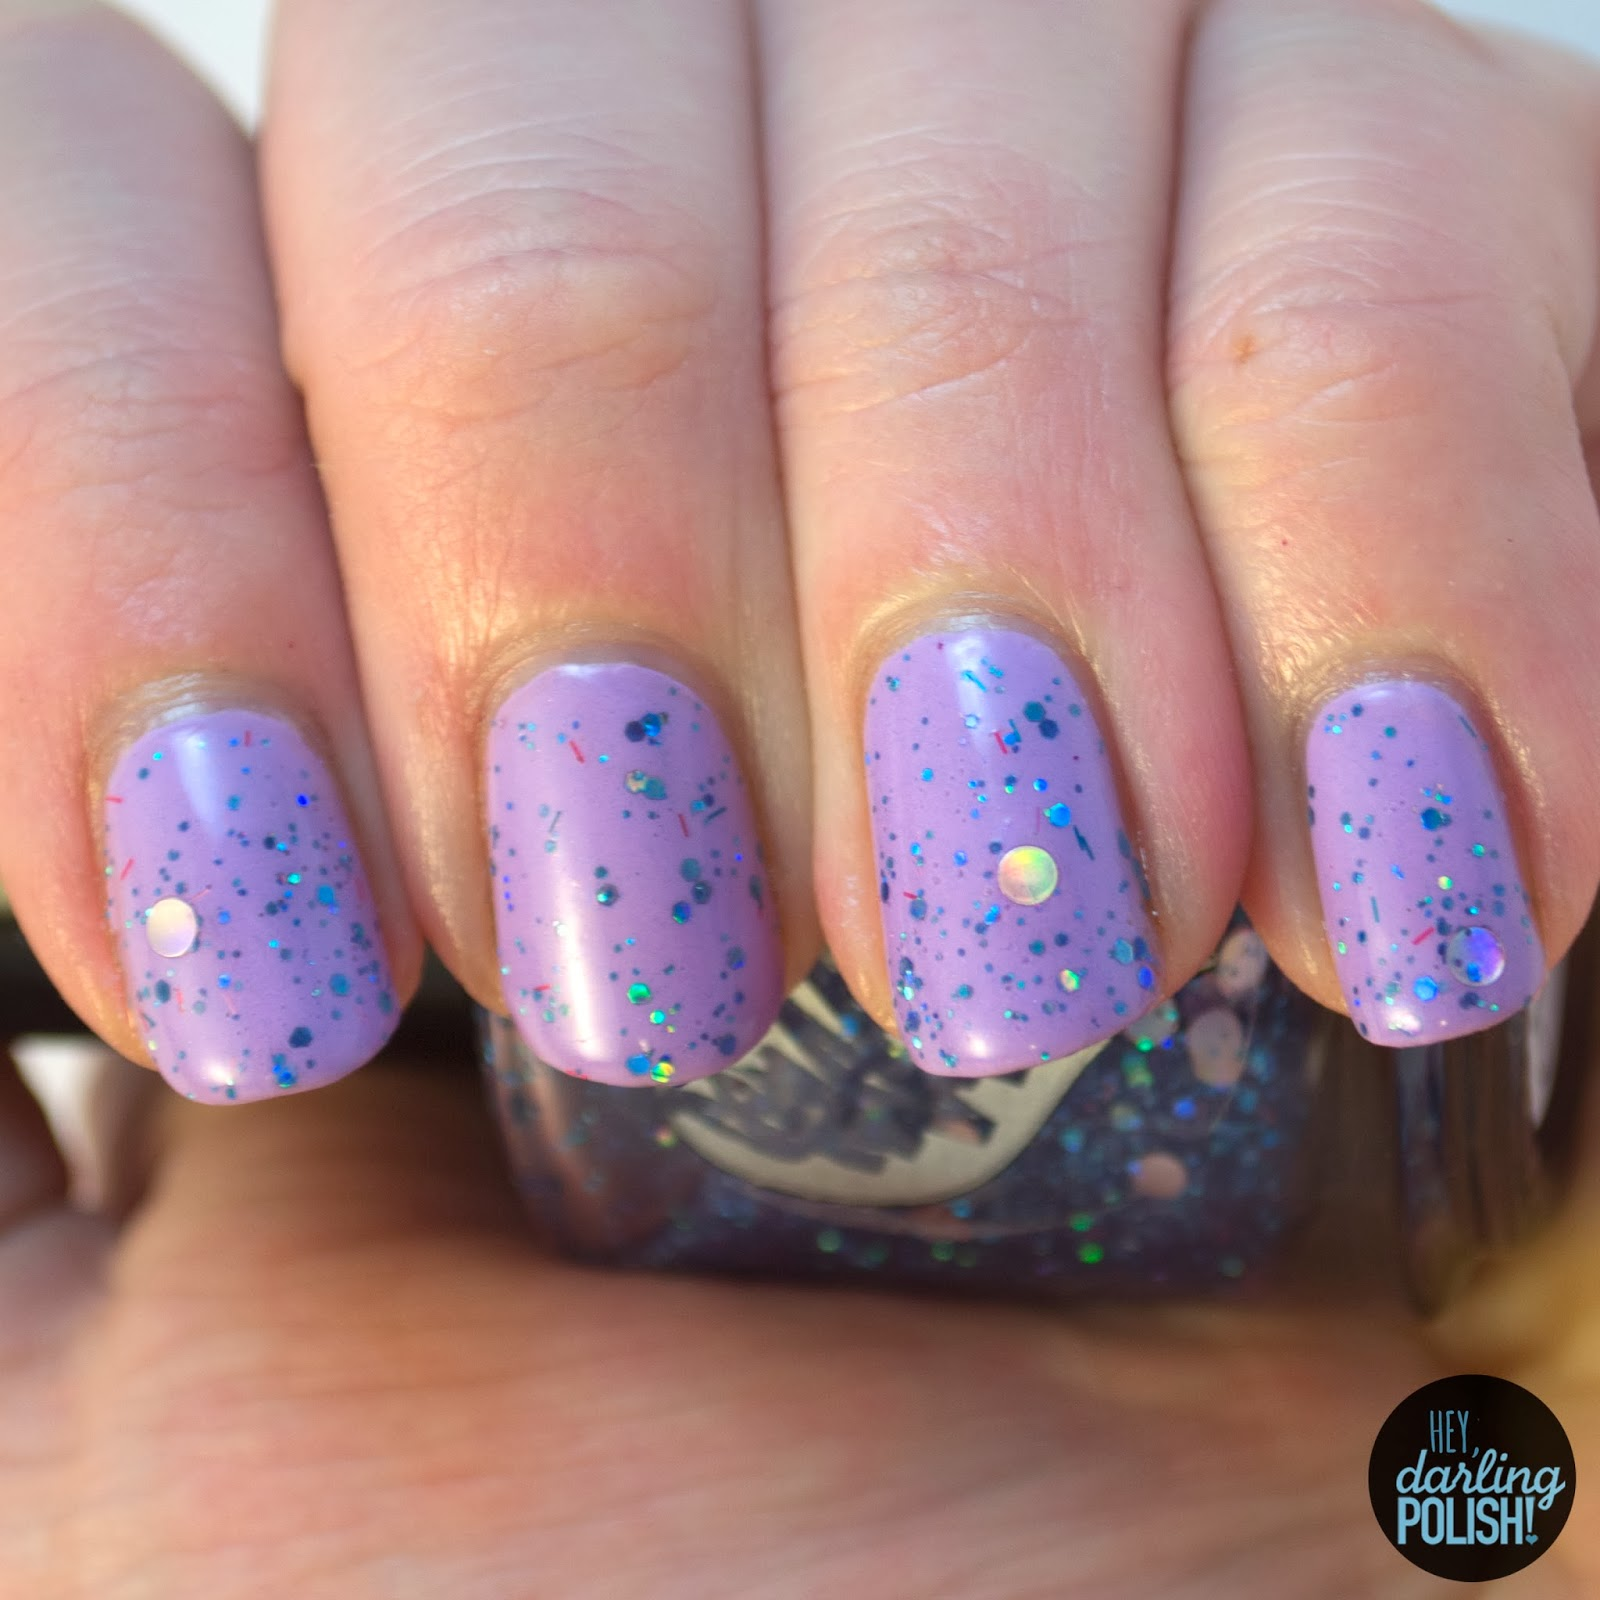 hey darling polish, swatches, indie, indie polish, cascade polish, purple, magic of the night, blue, glitter, circle glitter